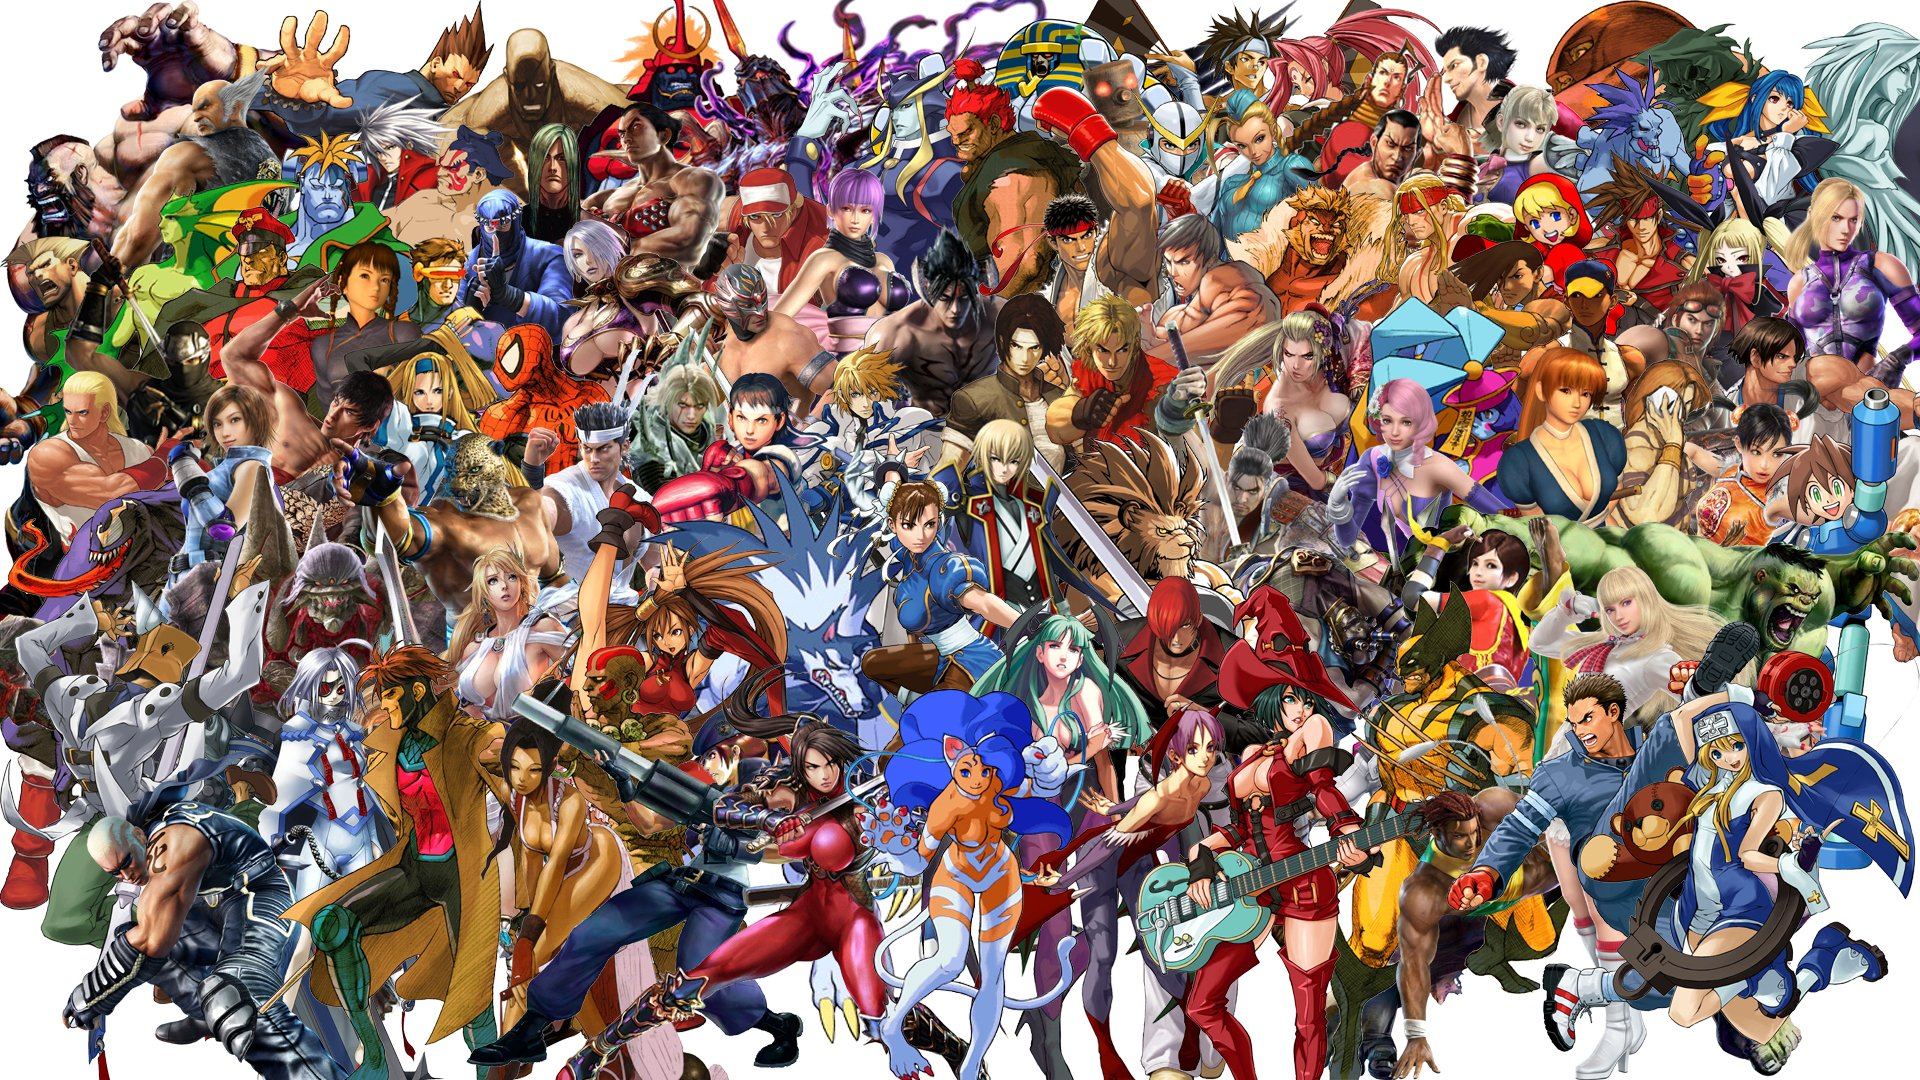 Top 10 Best Fighting Games For Android in 2019